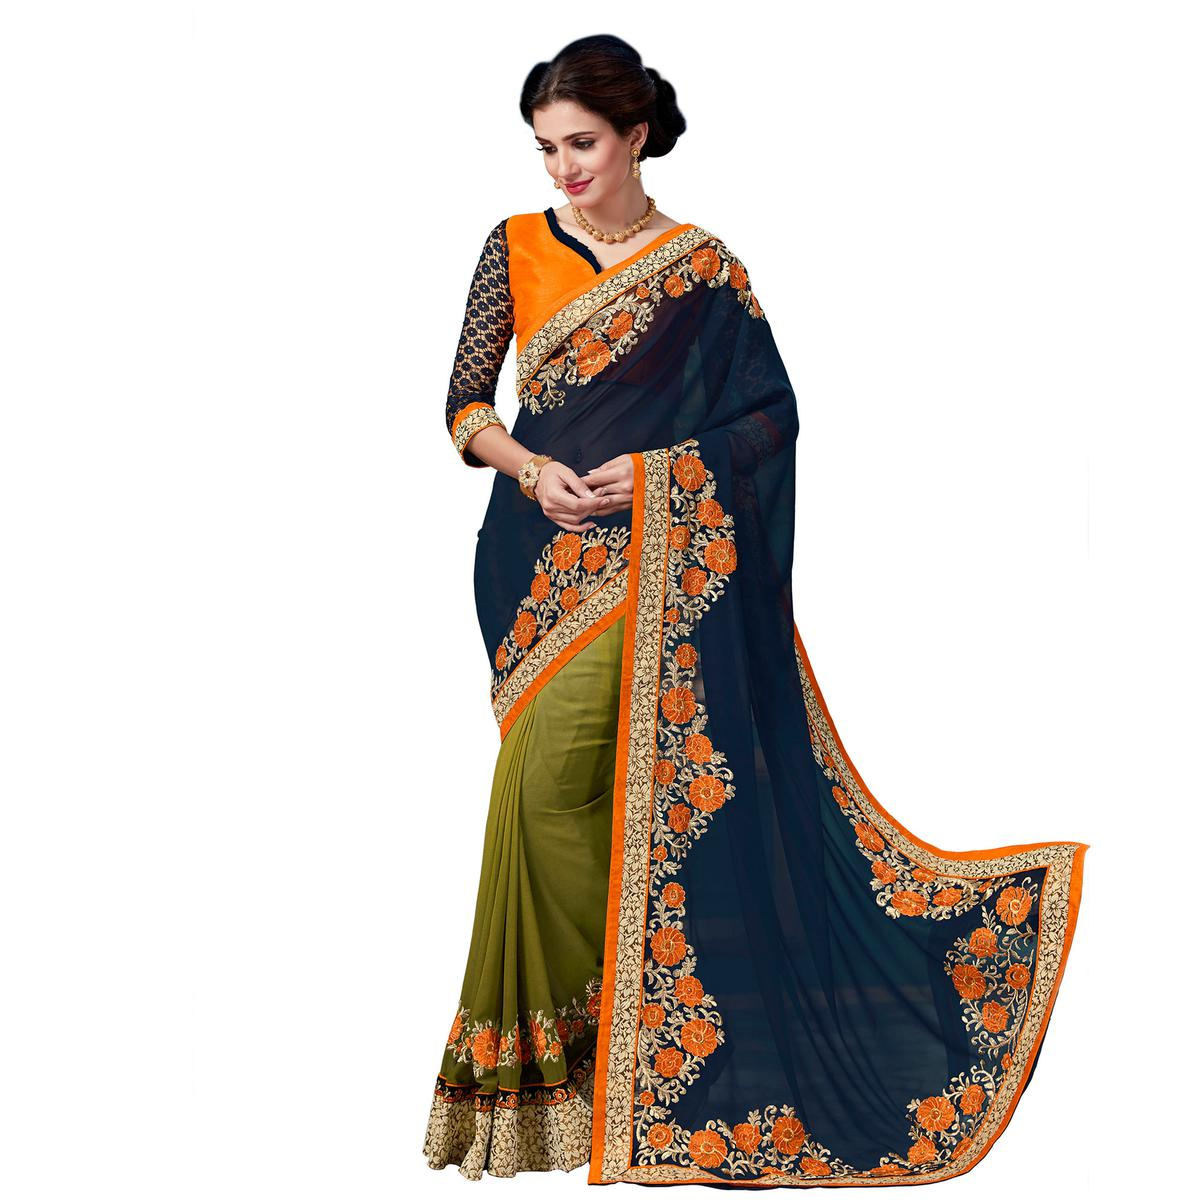 Olive Green - Navy Blue Floral Embroidered Work Half Saree